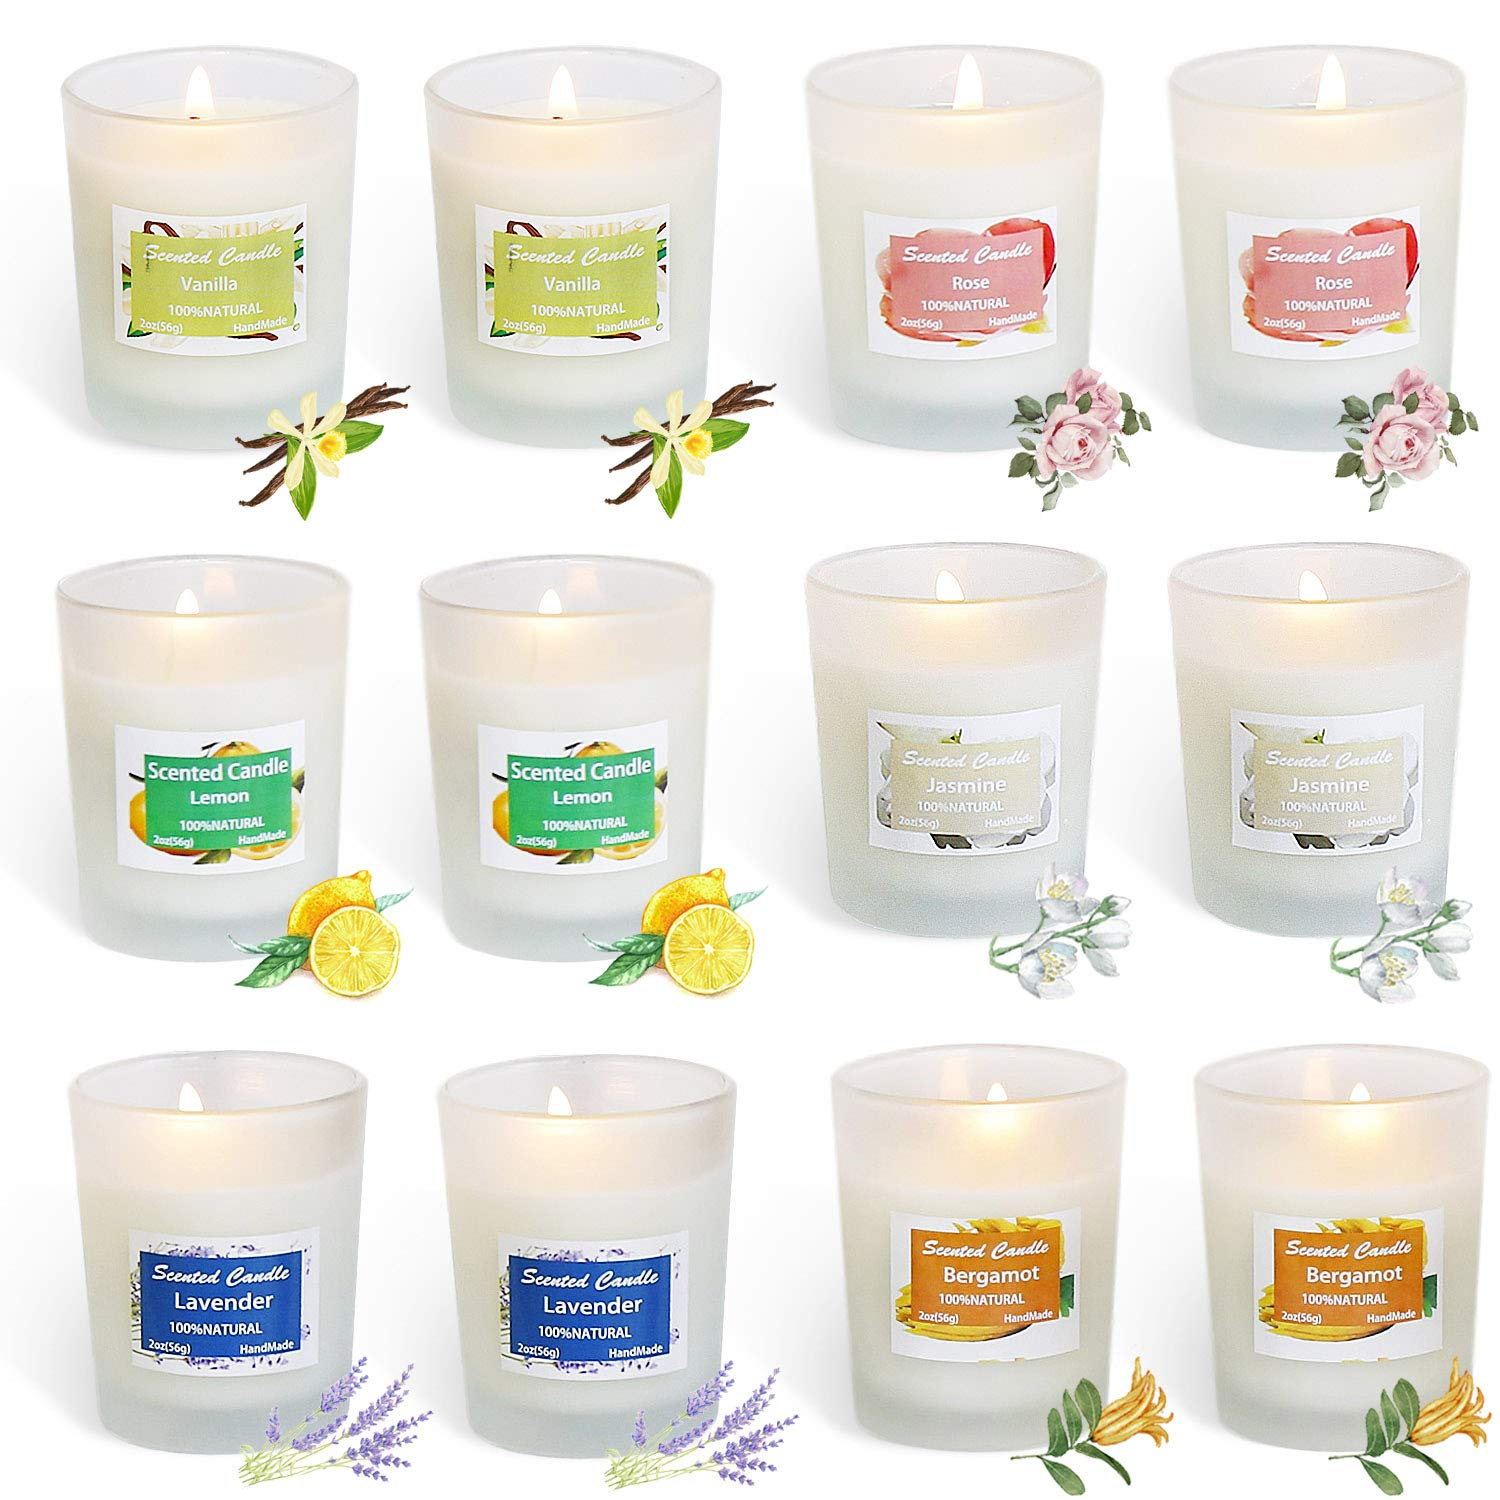 HELLY Soy Candle Strong Scented Candles - Aromatherapy Candles Long Lasting Candles White Frosted Glass Jar Candle (Lemon, Lavender, Rose ,Jasmine,Vanilla,Bergamot) -12 Pack by HELLY